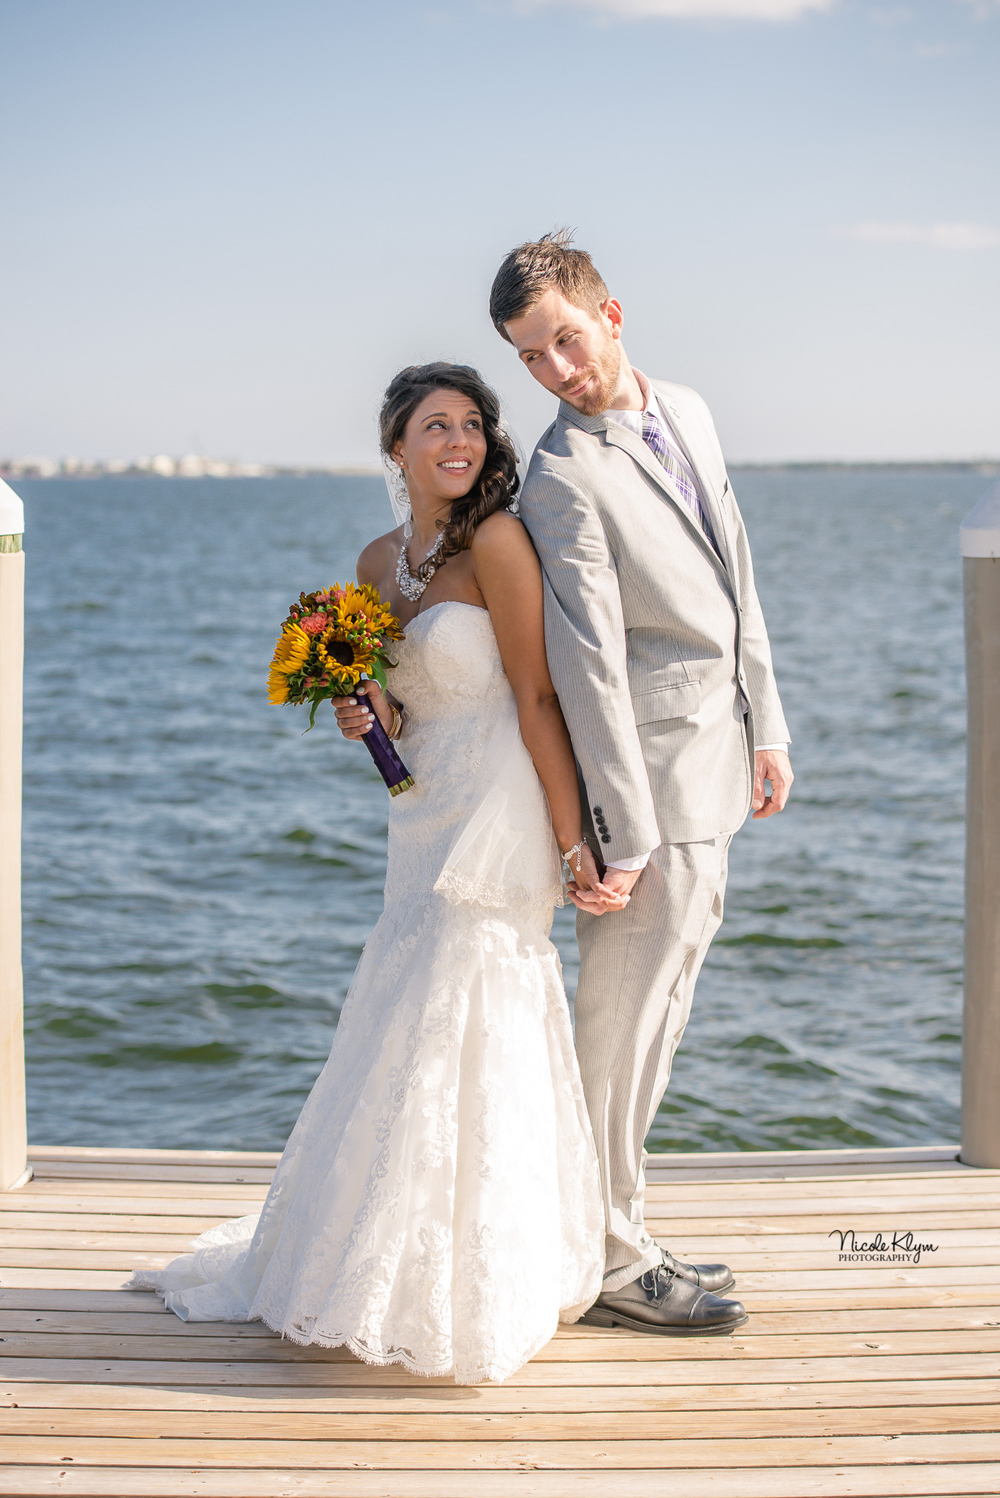 Waters Edge on the Bay Wedding | Bayville, NJ Wedding Photographer | Nicole Klym Photography | www.nicoleklym.com